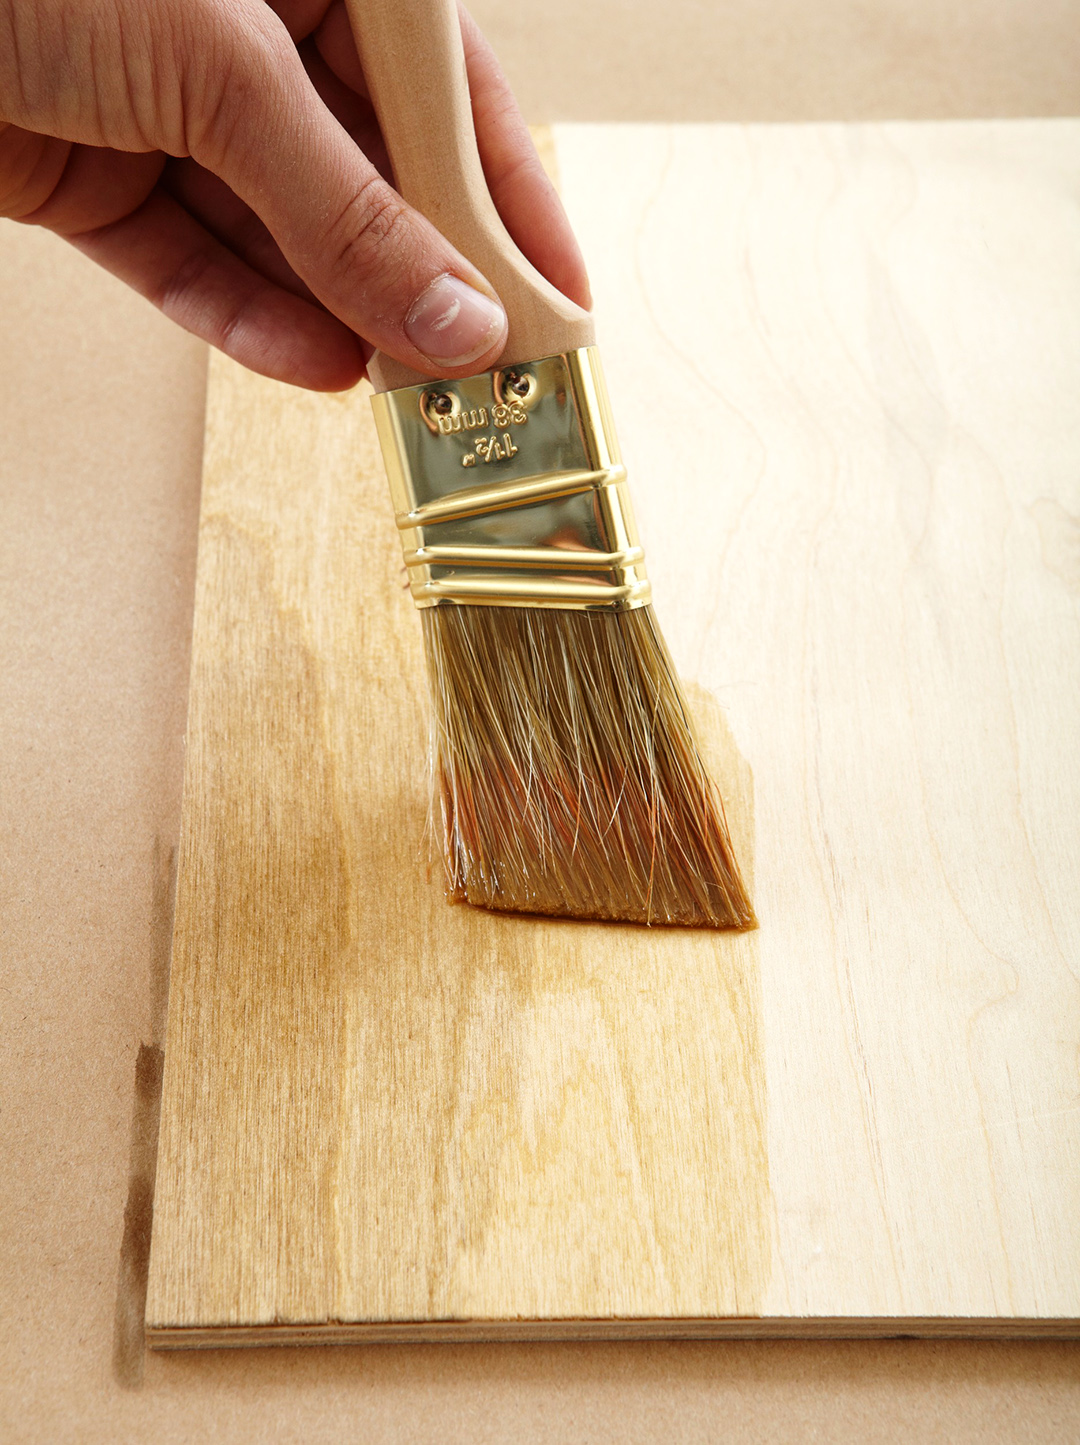 person painting clear stain on piece of wood